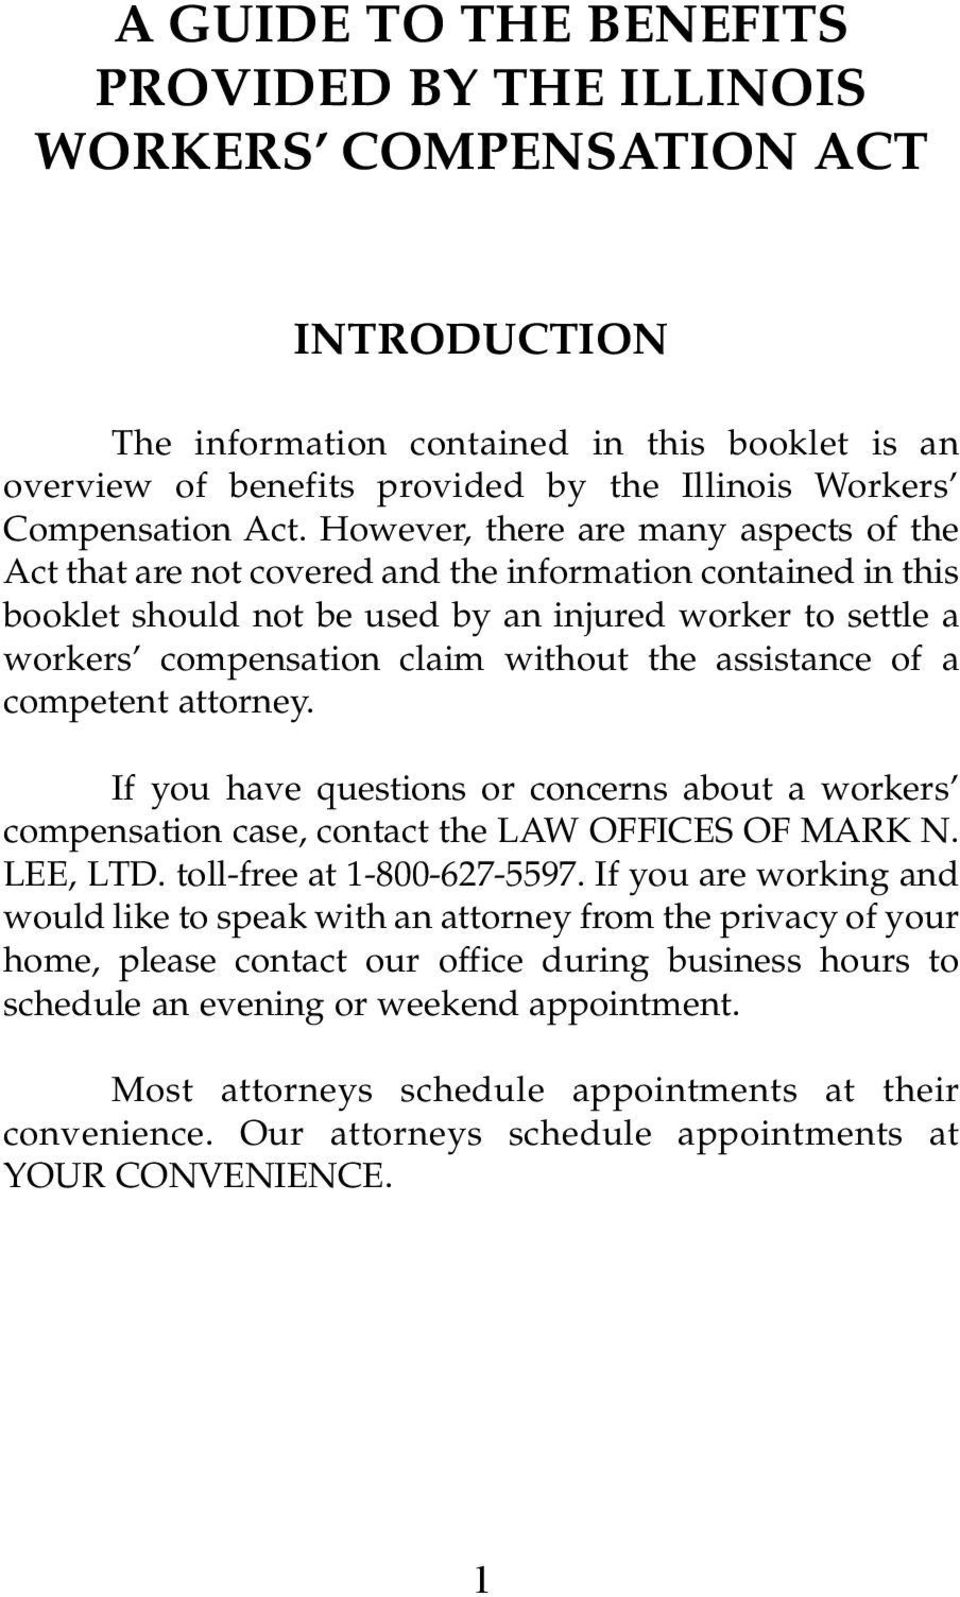 However, there are many aspects of the Act that are not covered and the information contained in this booklet should not be used by an injured worker to settle a workers compensation claim without